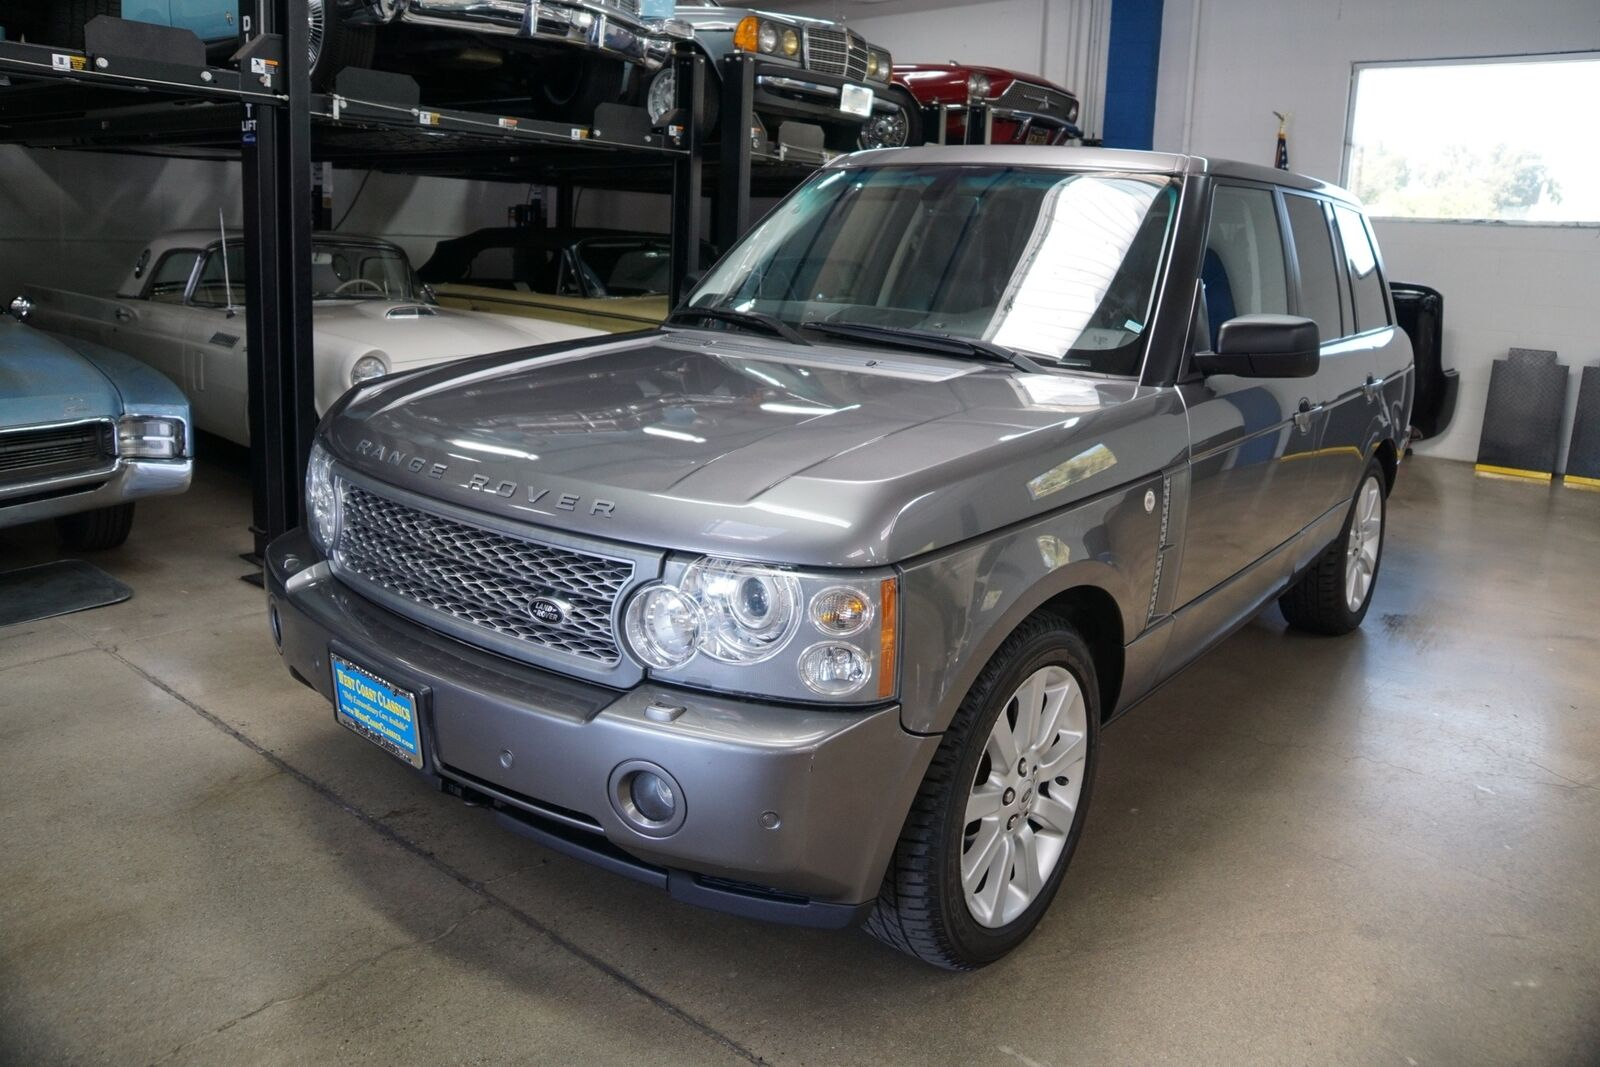 2008 Land Rover Range Rover 4.2L V8 Supercharged 4 dr SUV Supercharged